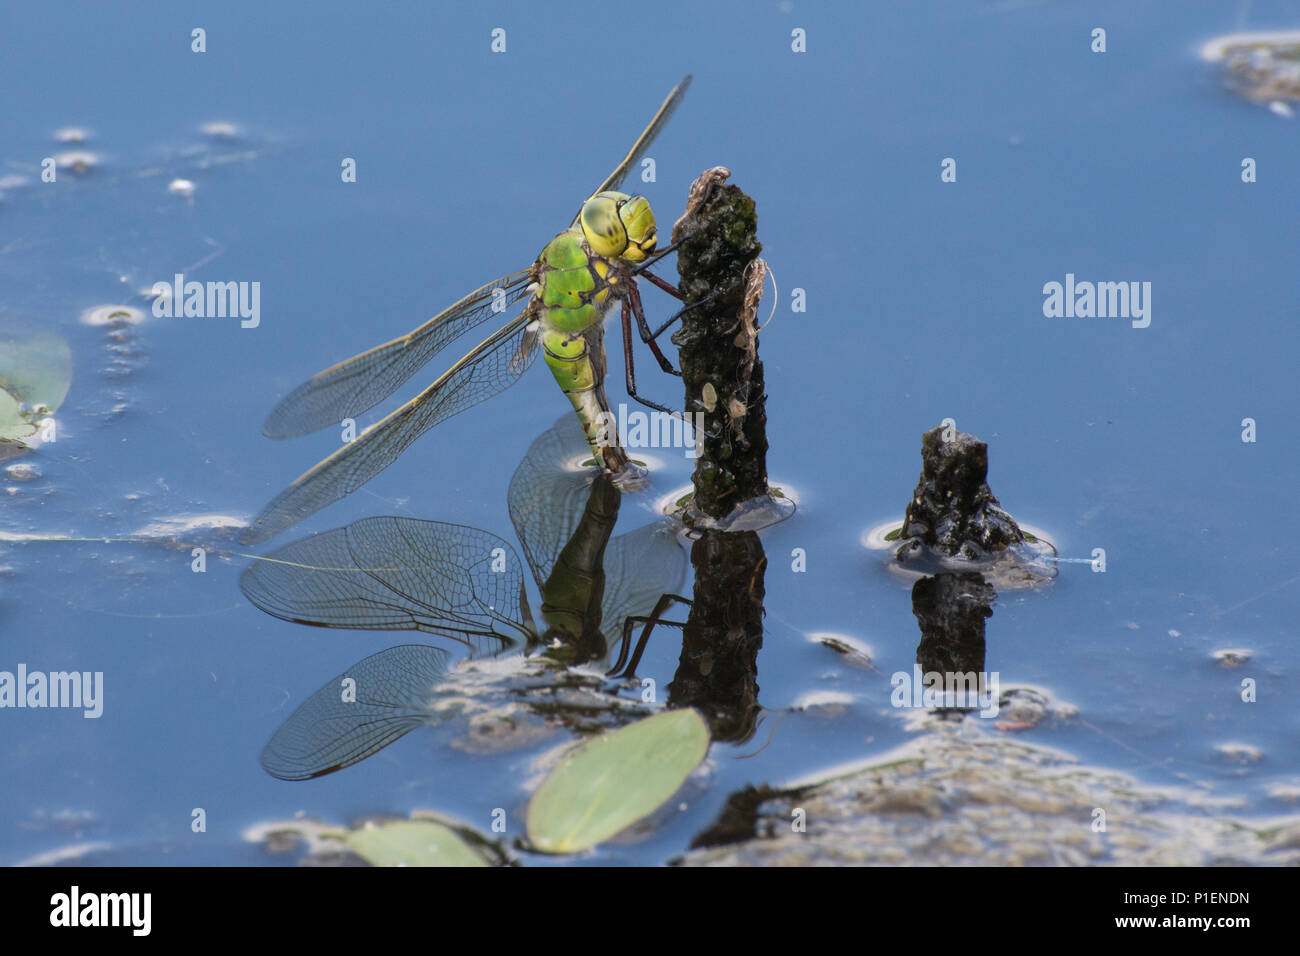 female-emperor-dragonfly-anax-imperator-ovipositing-laying-eggs-in-a-pond-uk-P1ENDN.jpg